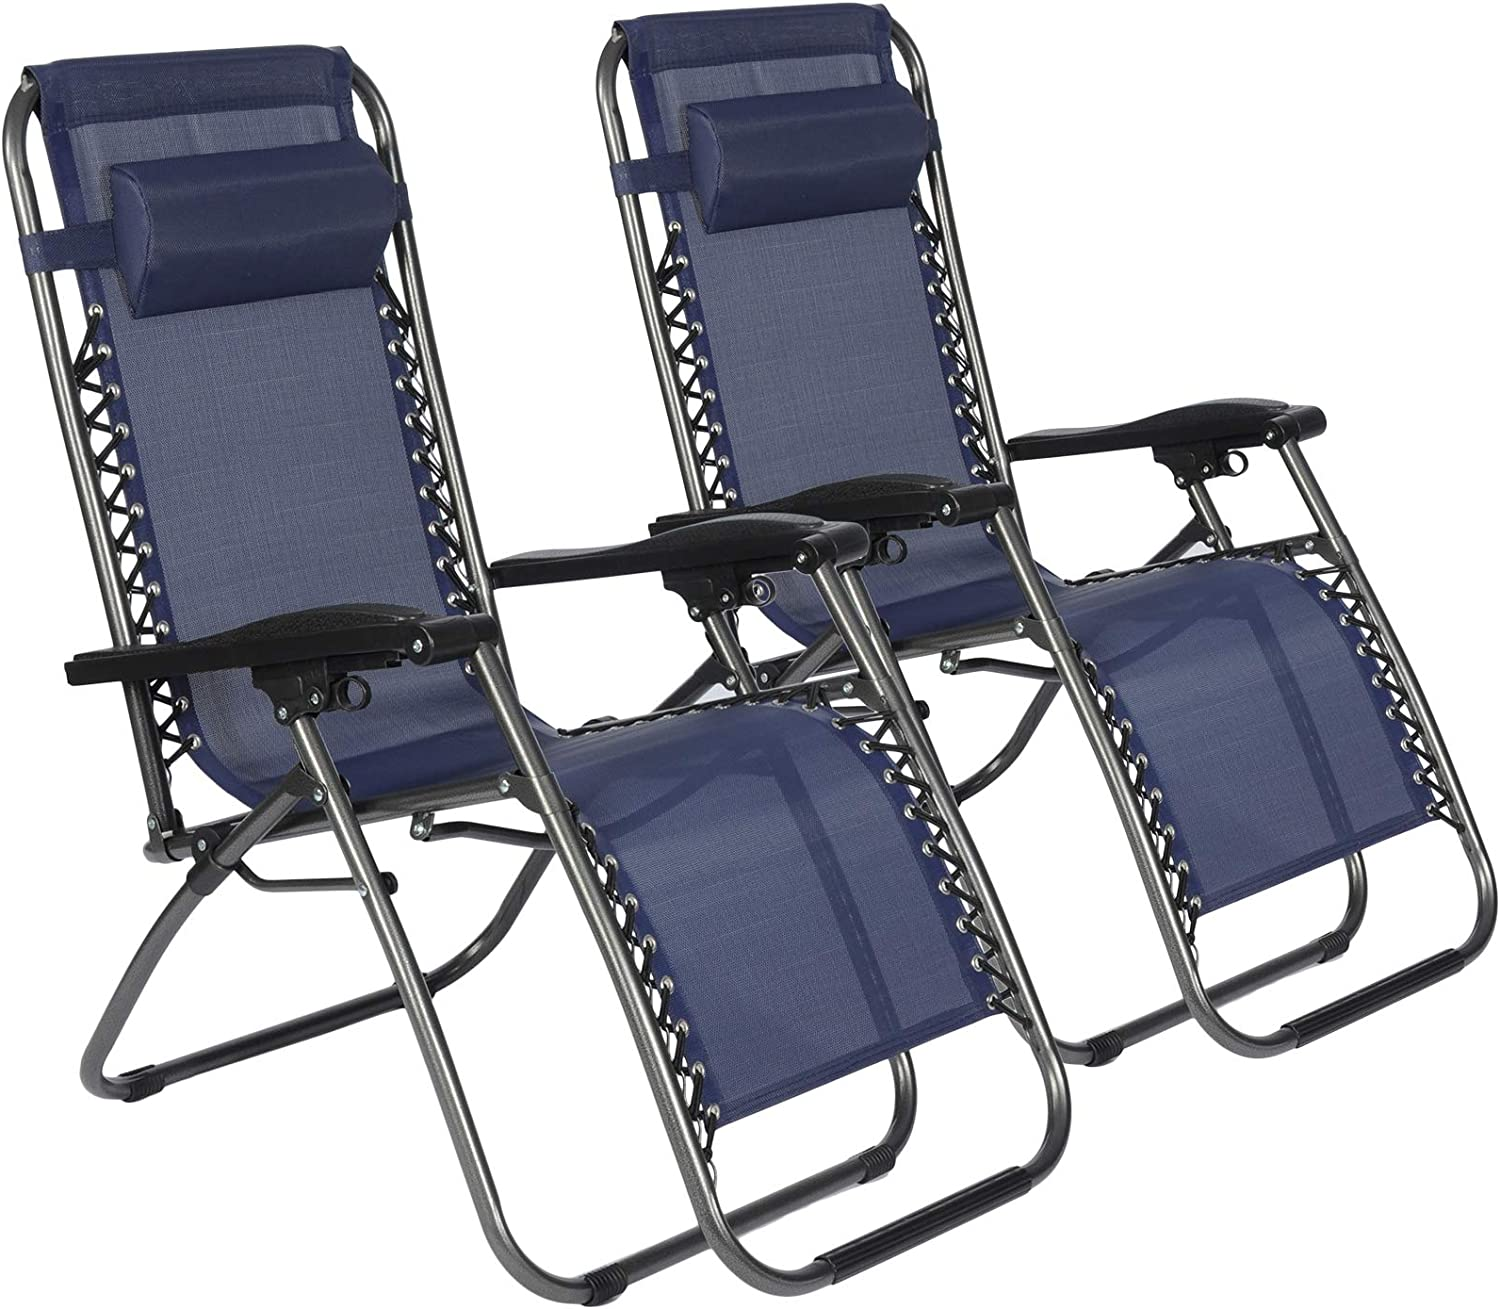 KARMAS PRODUCT Zero Gravity Chairs Set Opening large release sale Lo wholesale 2 of Outdoor Reclining